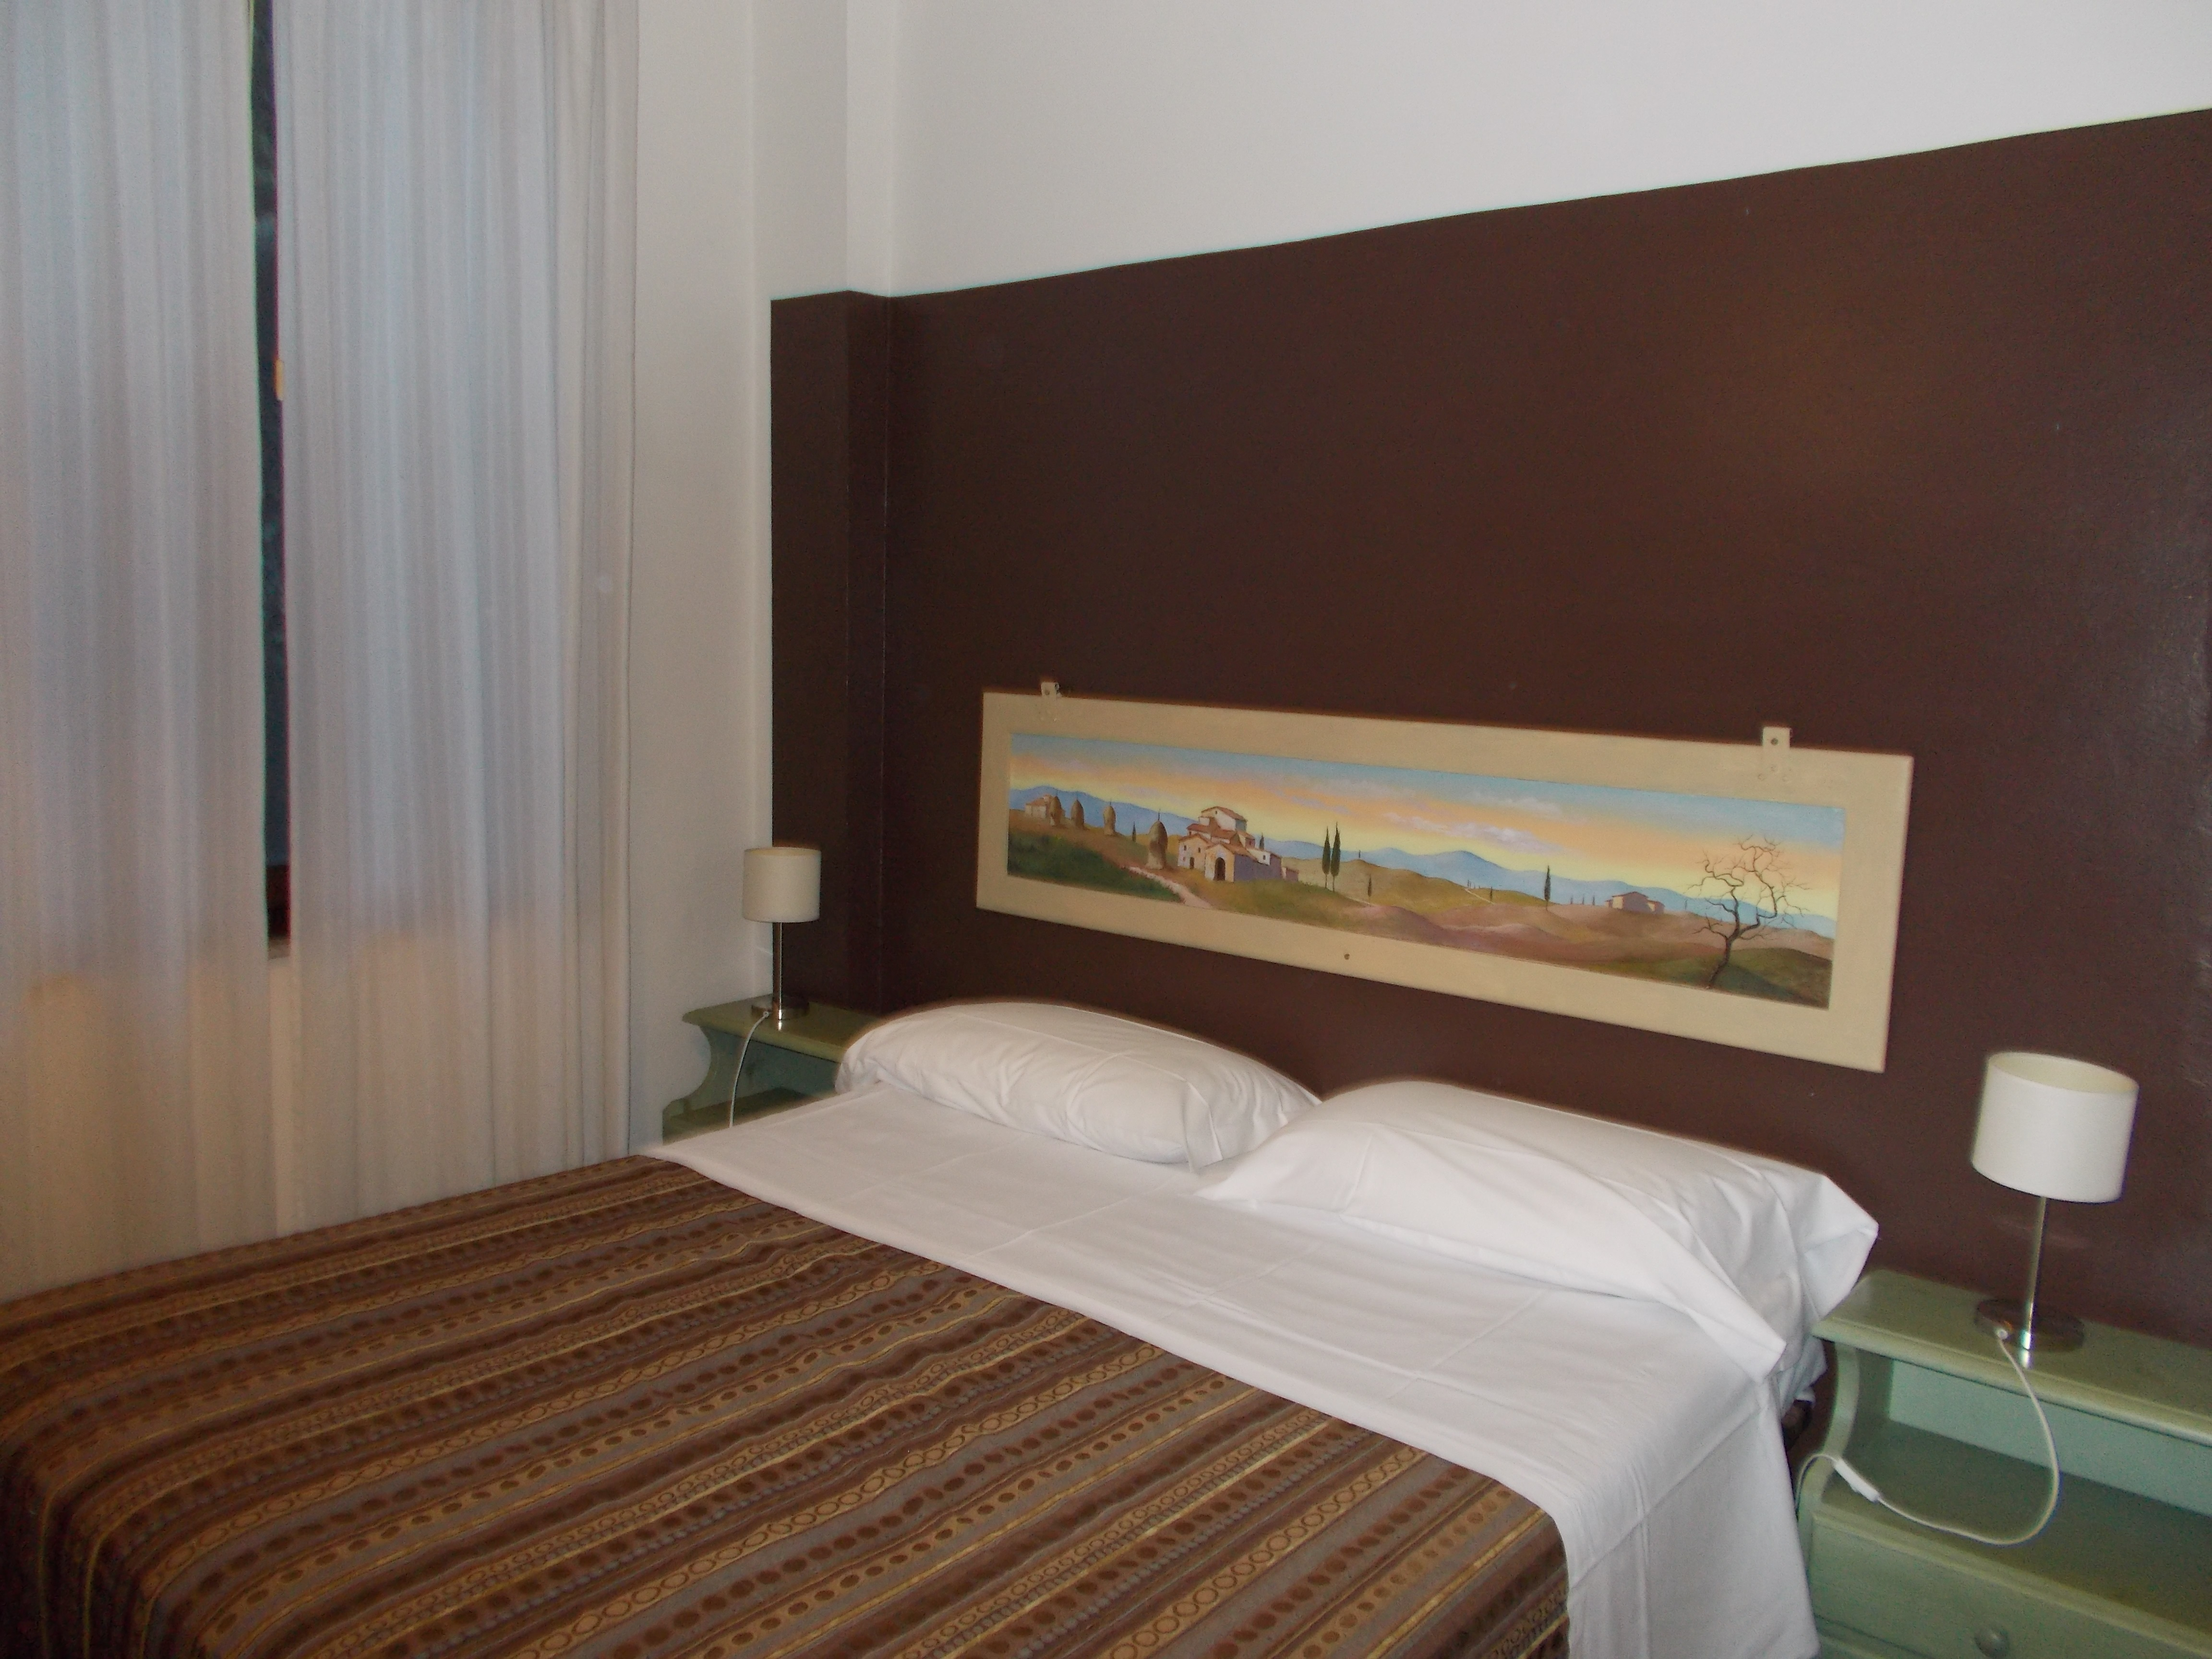 Soggiorno Lo Stellino (Siena) - Hotel Reviews, Photos, Rate Comparison ...